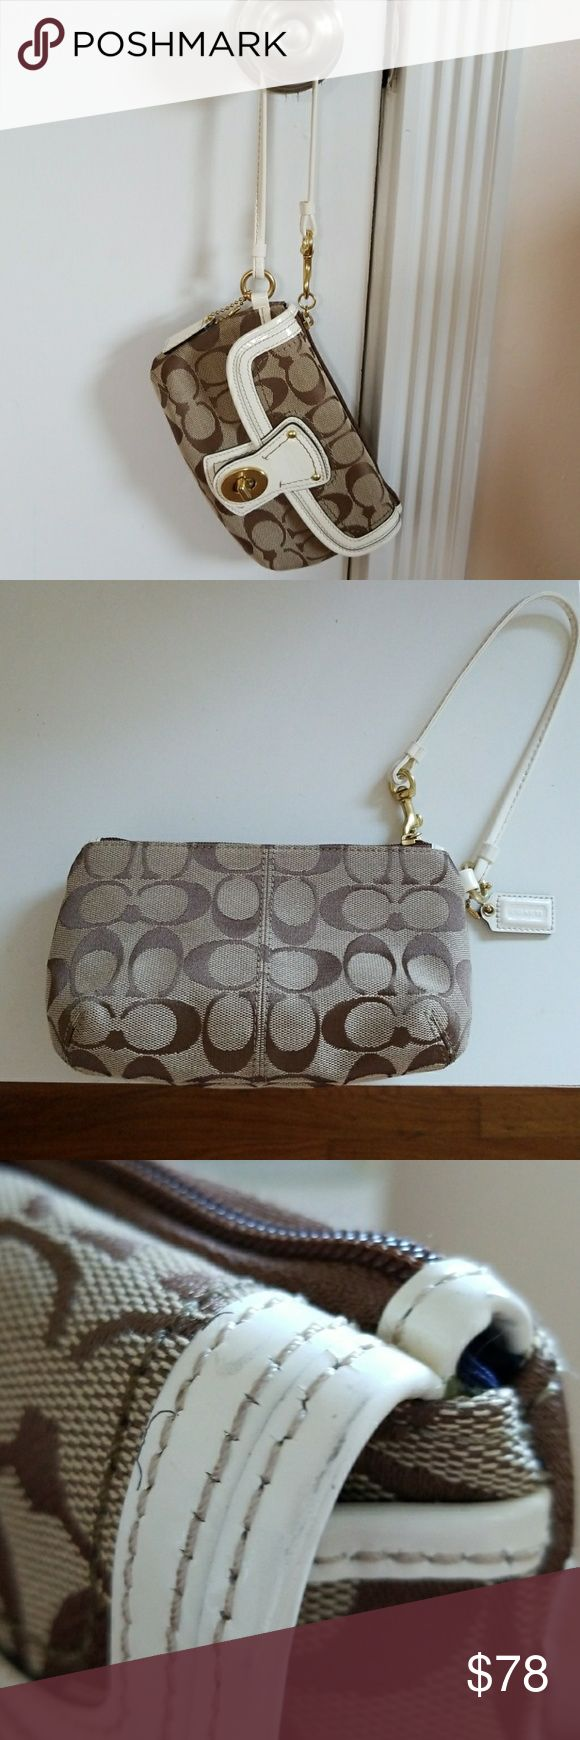 """Coach Legacy Signature Turnlock Wristlet Inside/Outside clean ~ Approx : 7.5"""" x 4.5"""" Coach Bags Clutches & Wristlets"""